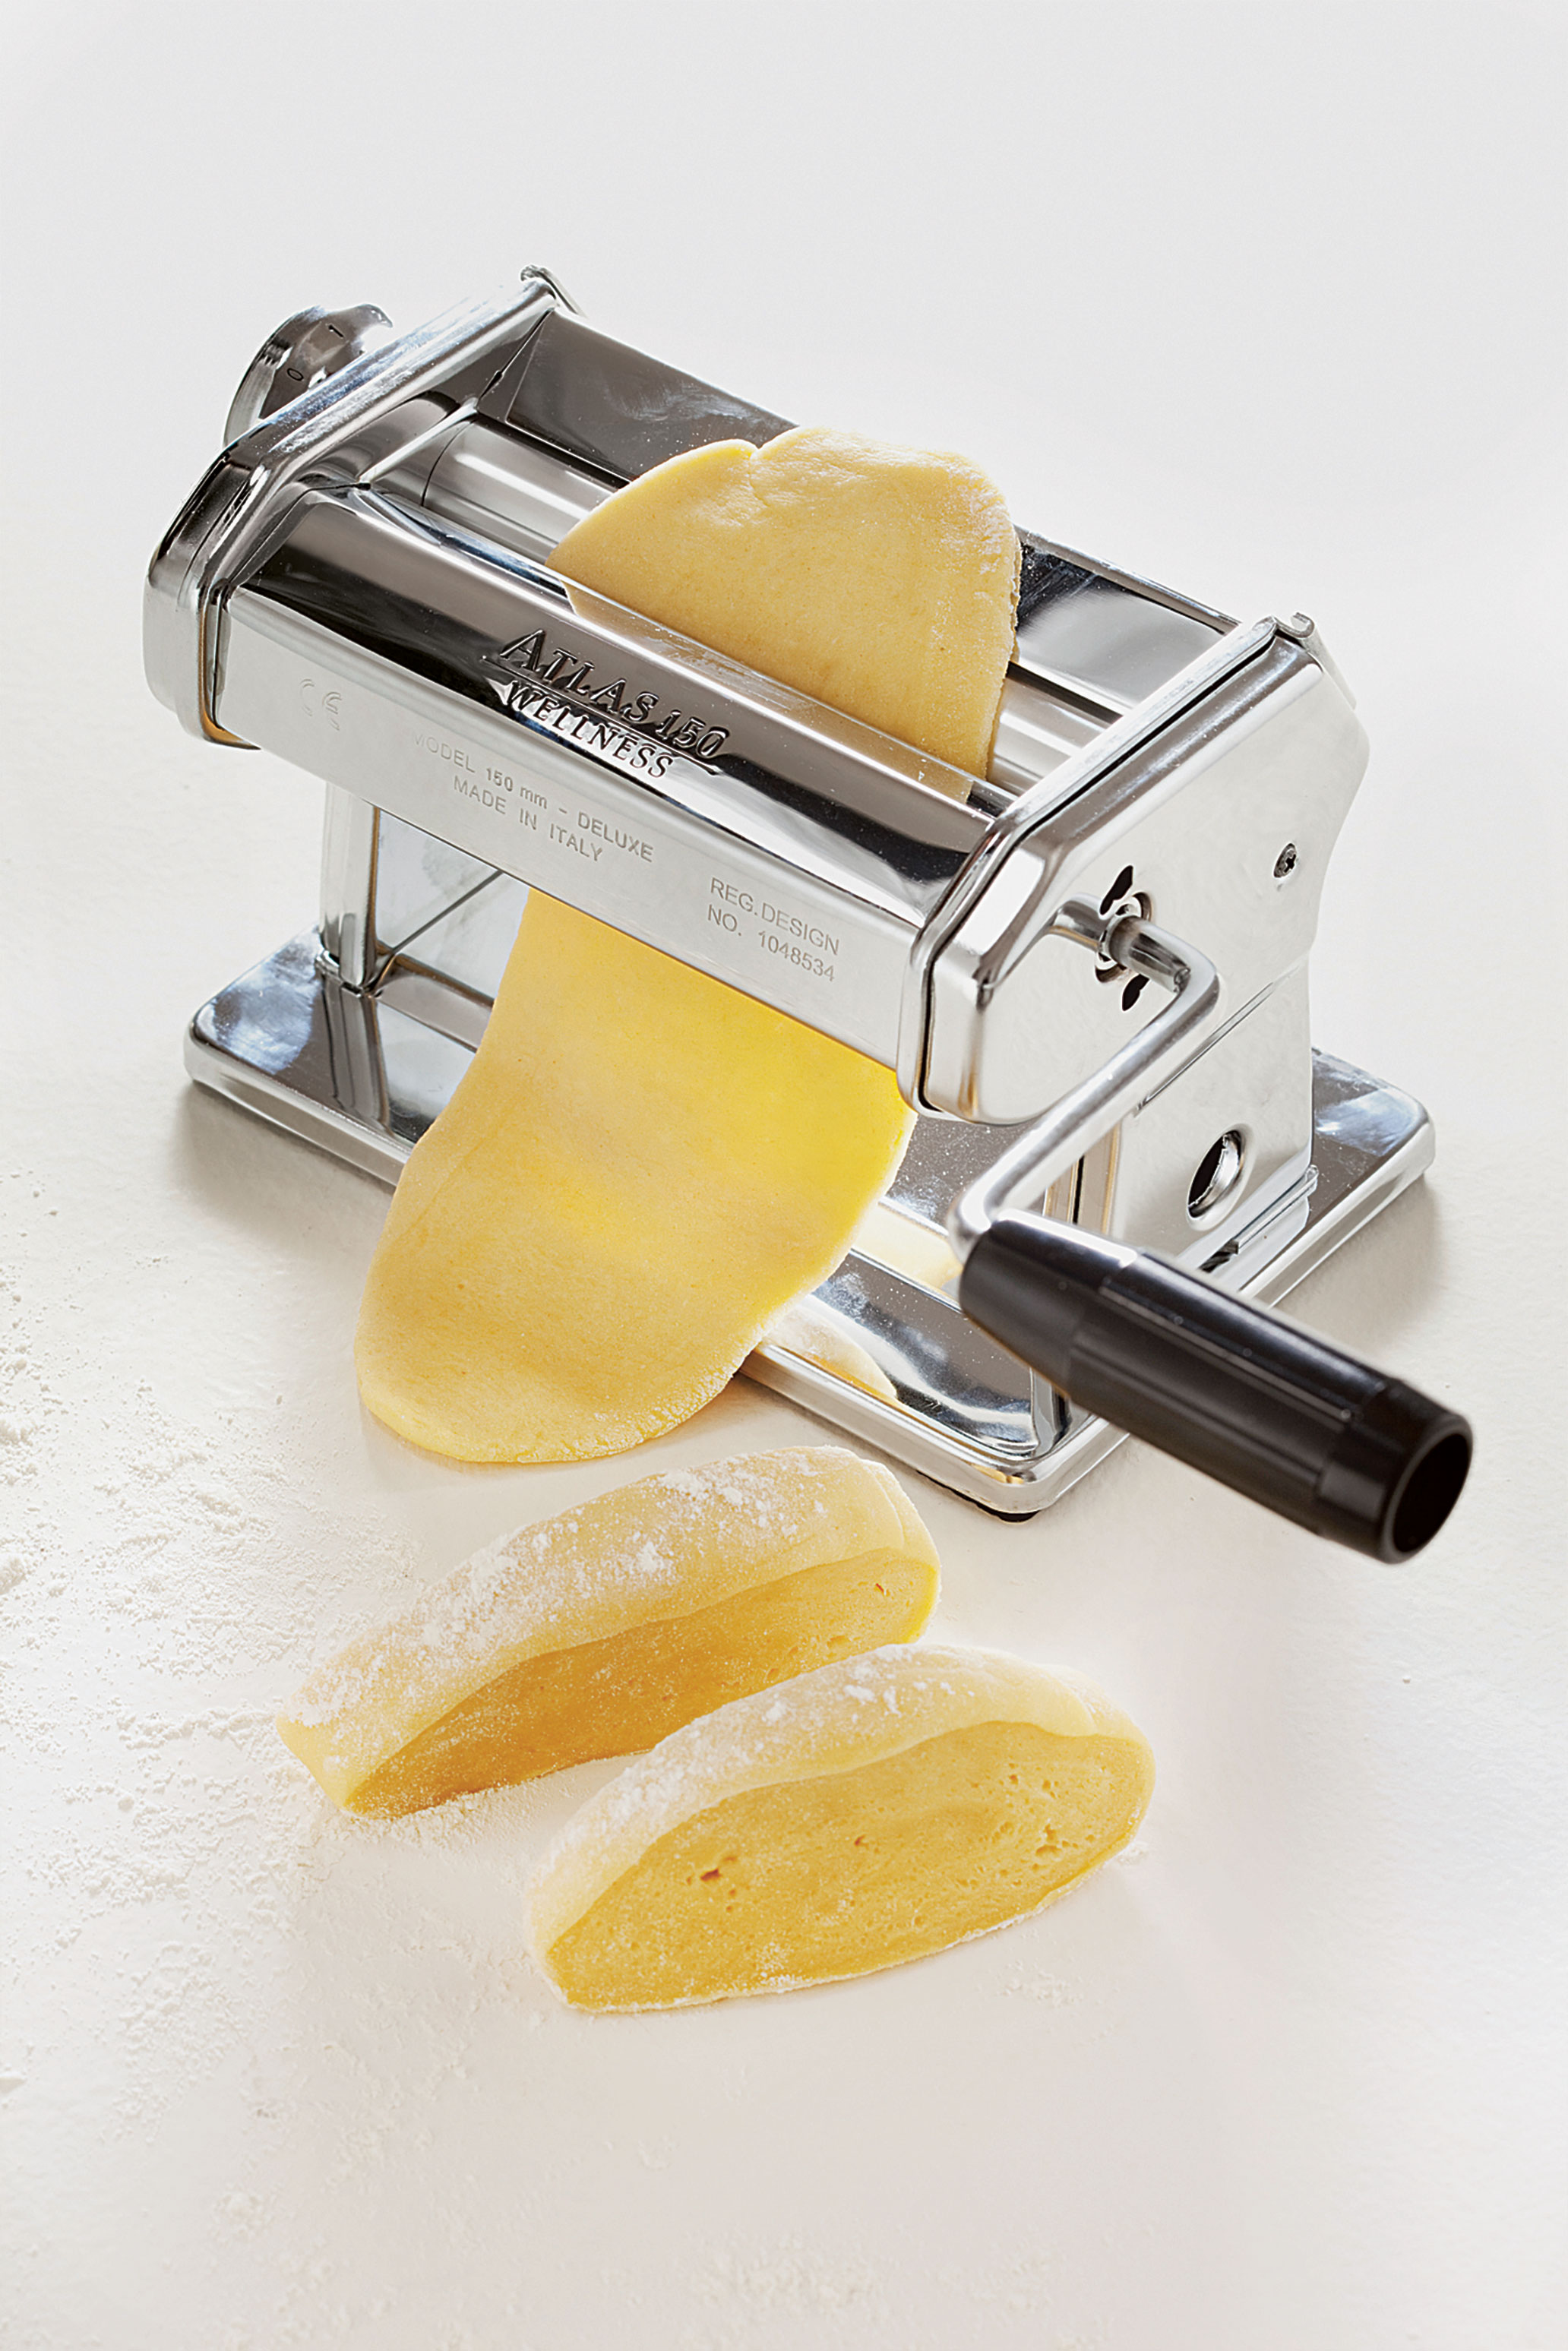 Fresh egg pasta being made in a pasta machine, as featured in The Silver Spoon Classic